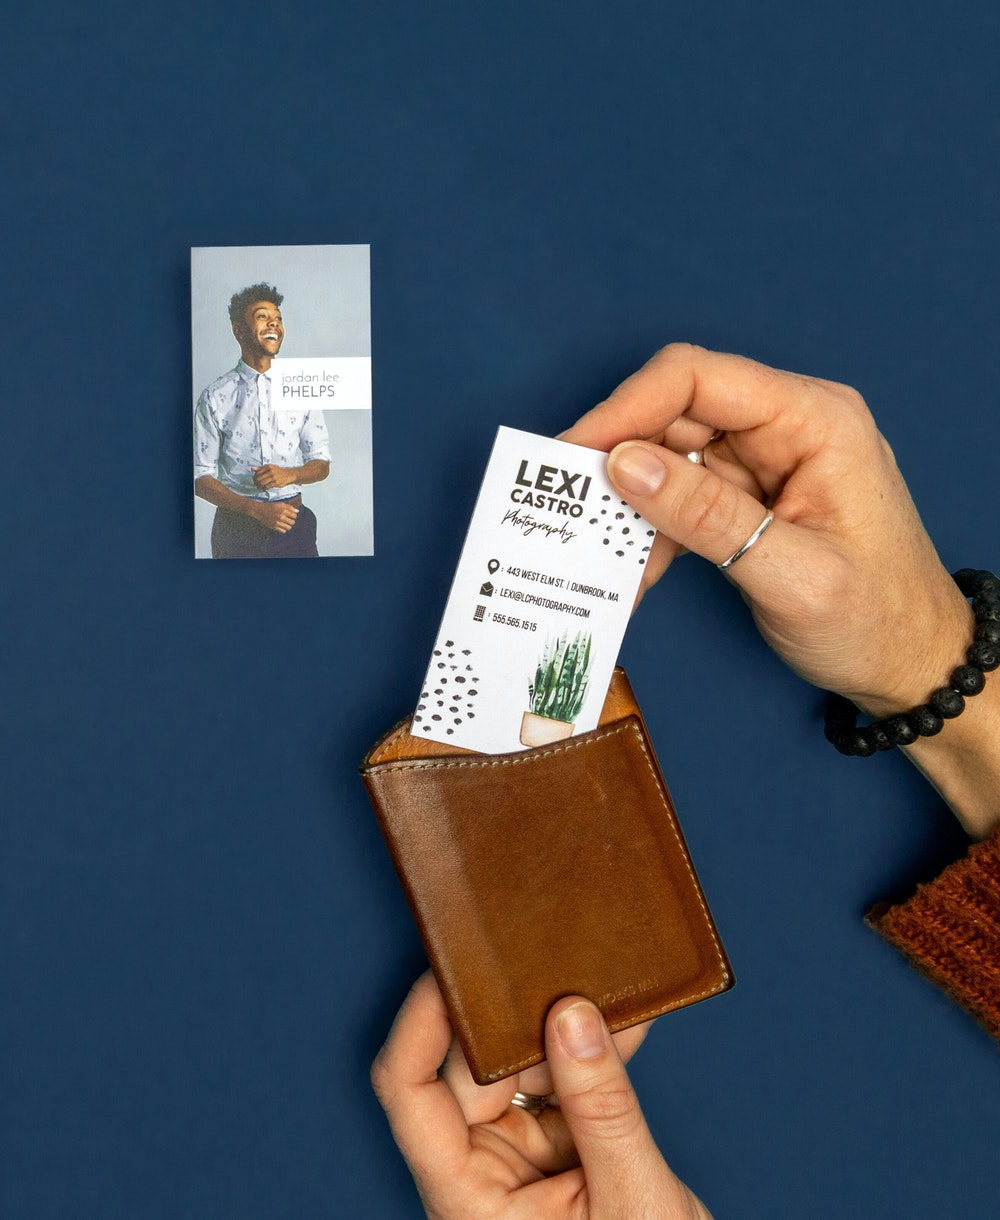 Hand placing Business Cards into wallet